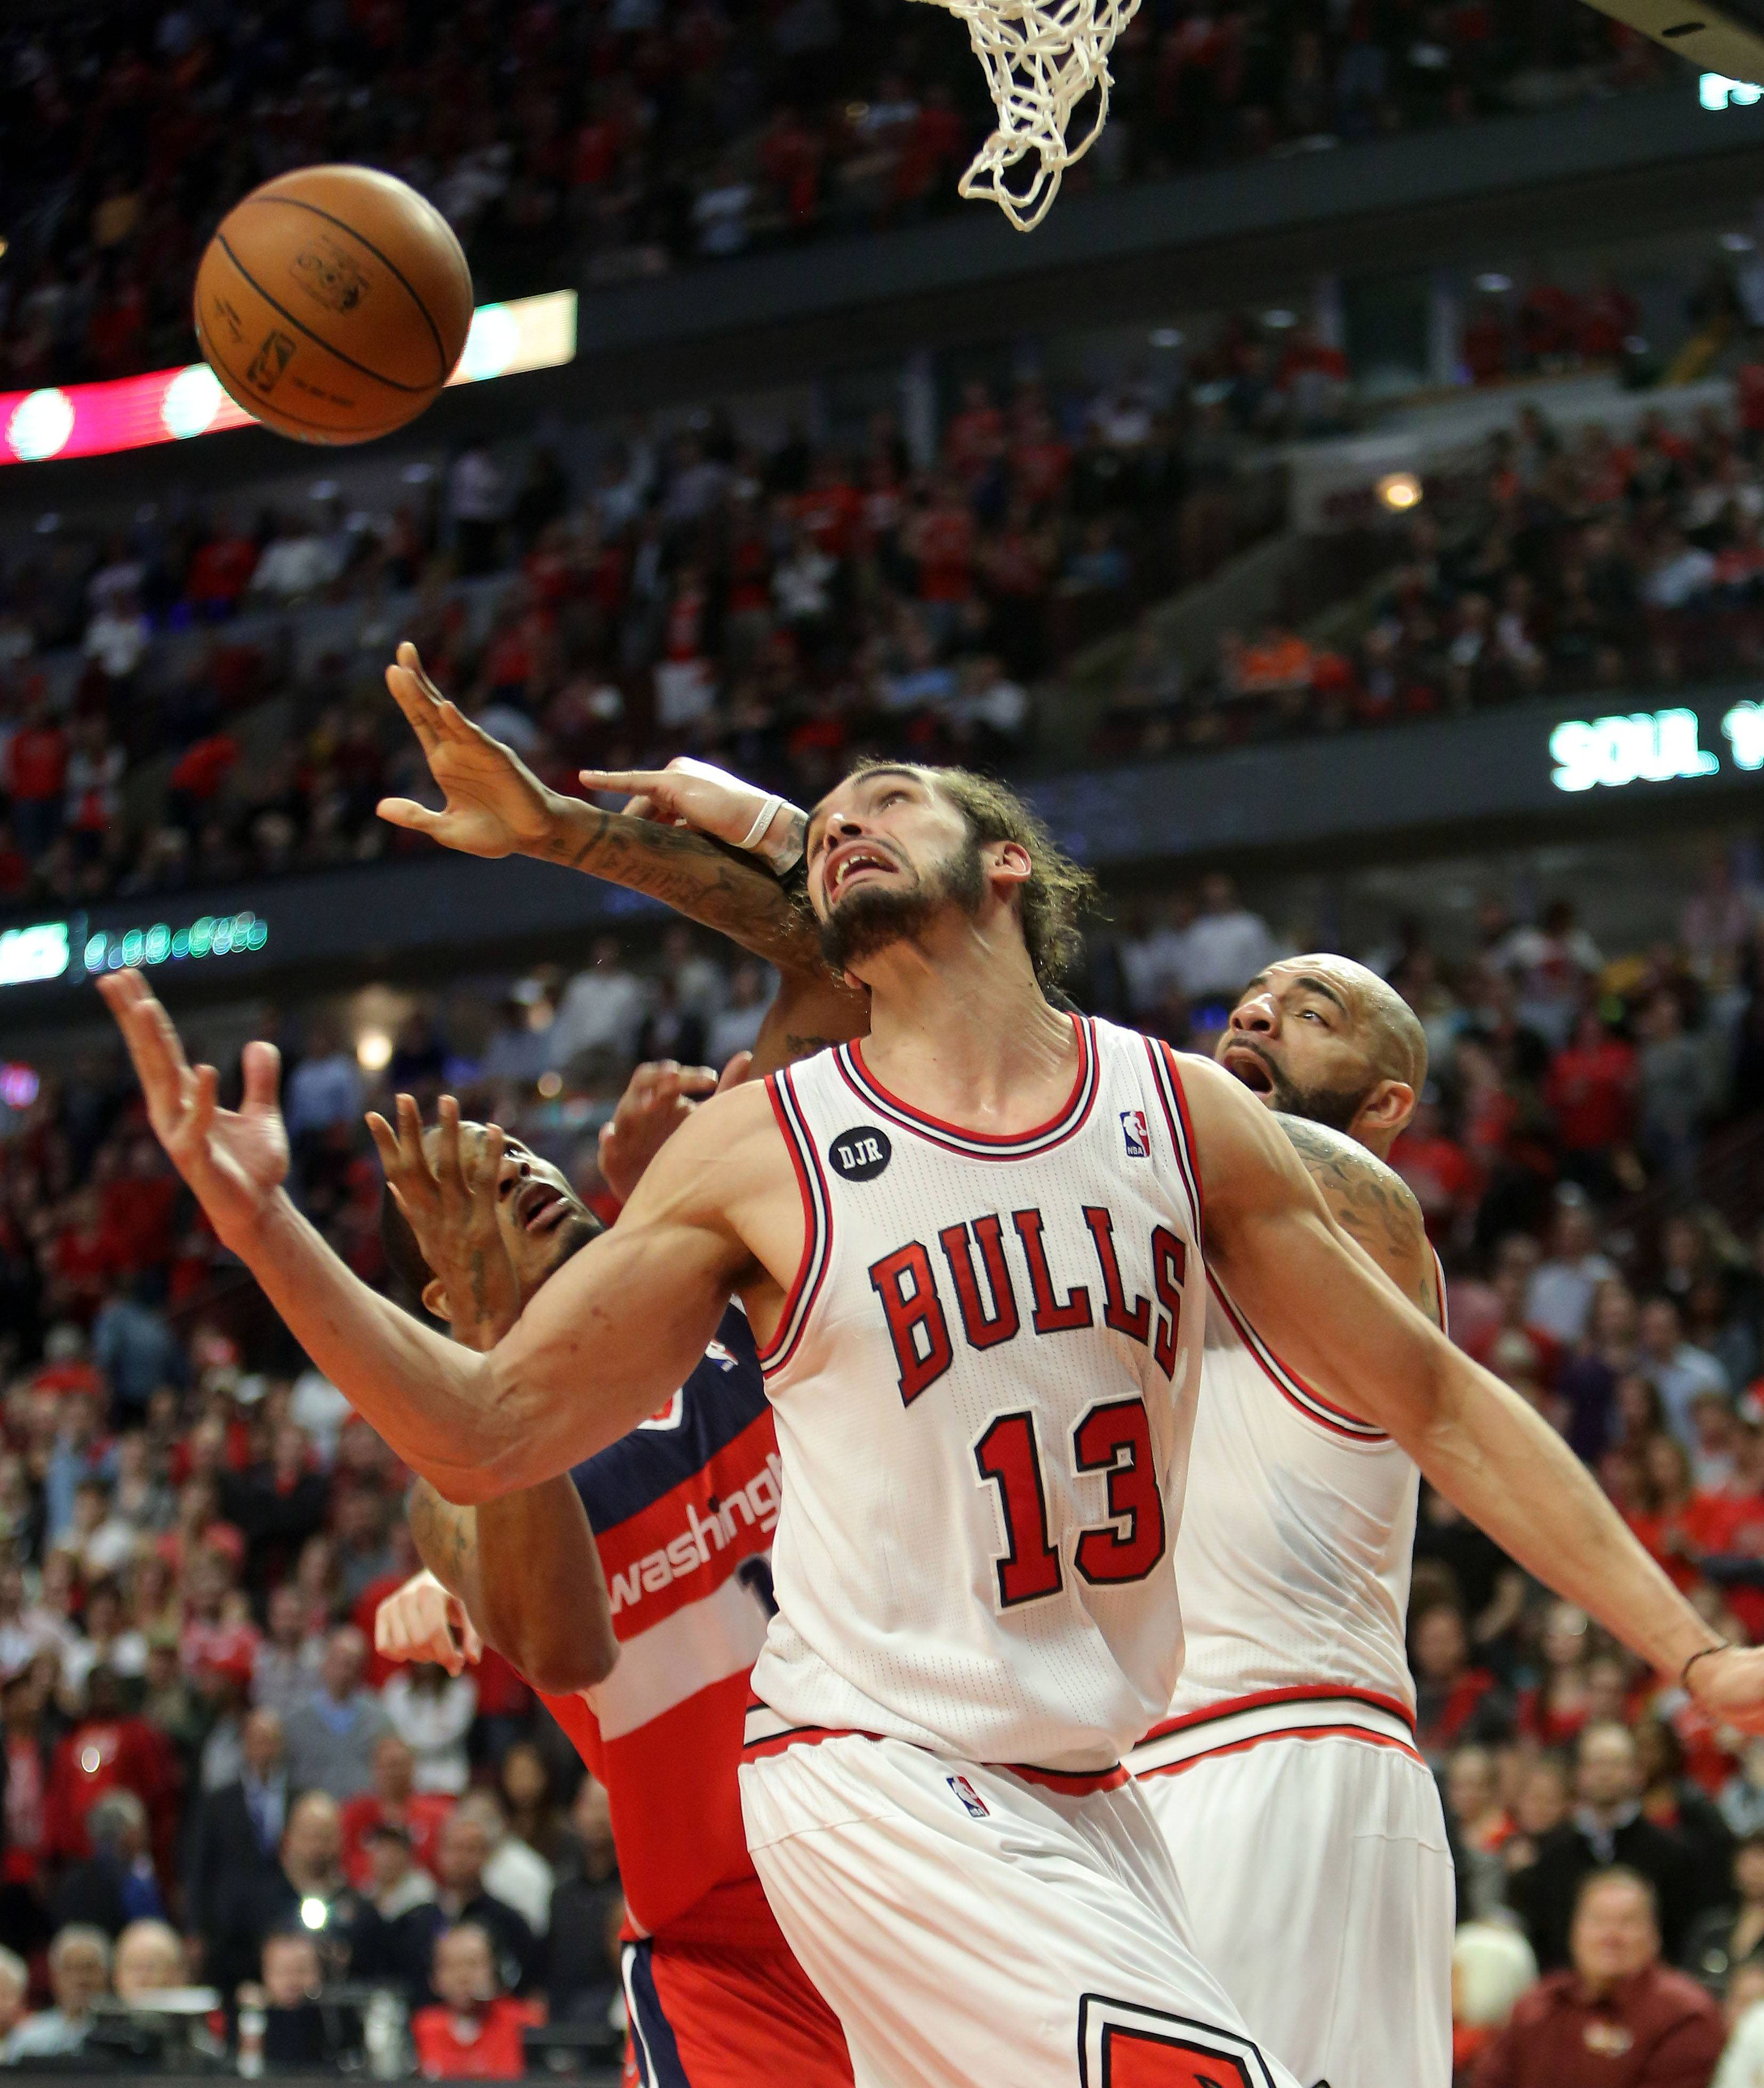 Chicago Bulls center Joakim Noah looks for the ball.